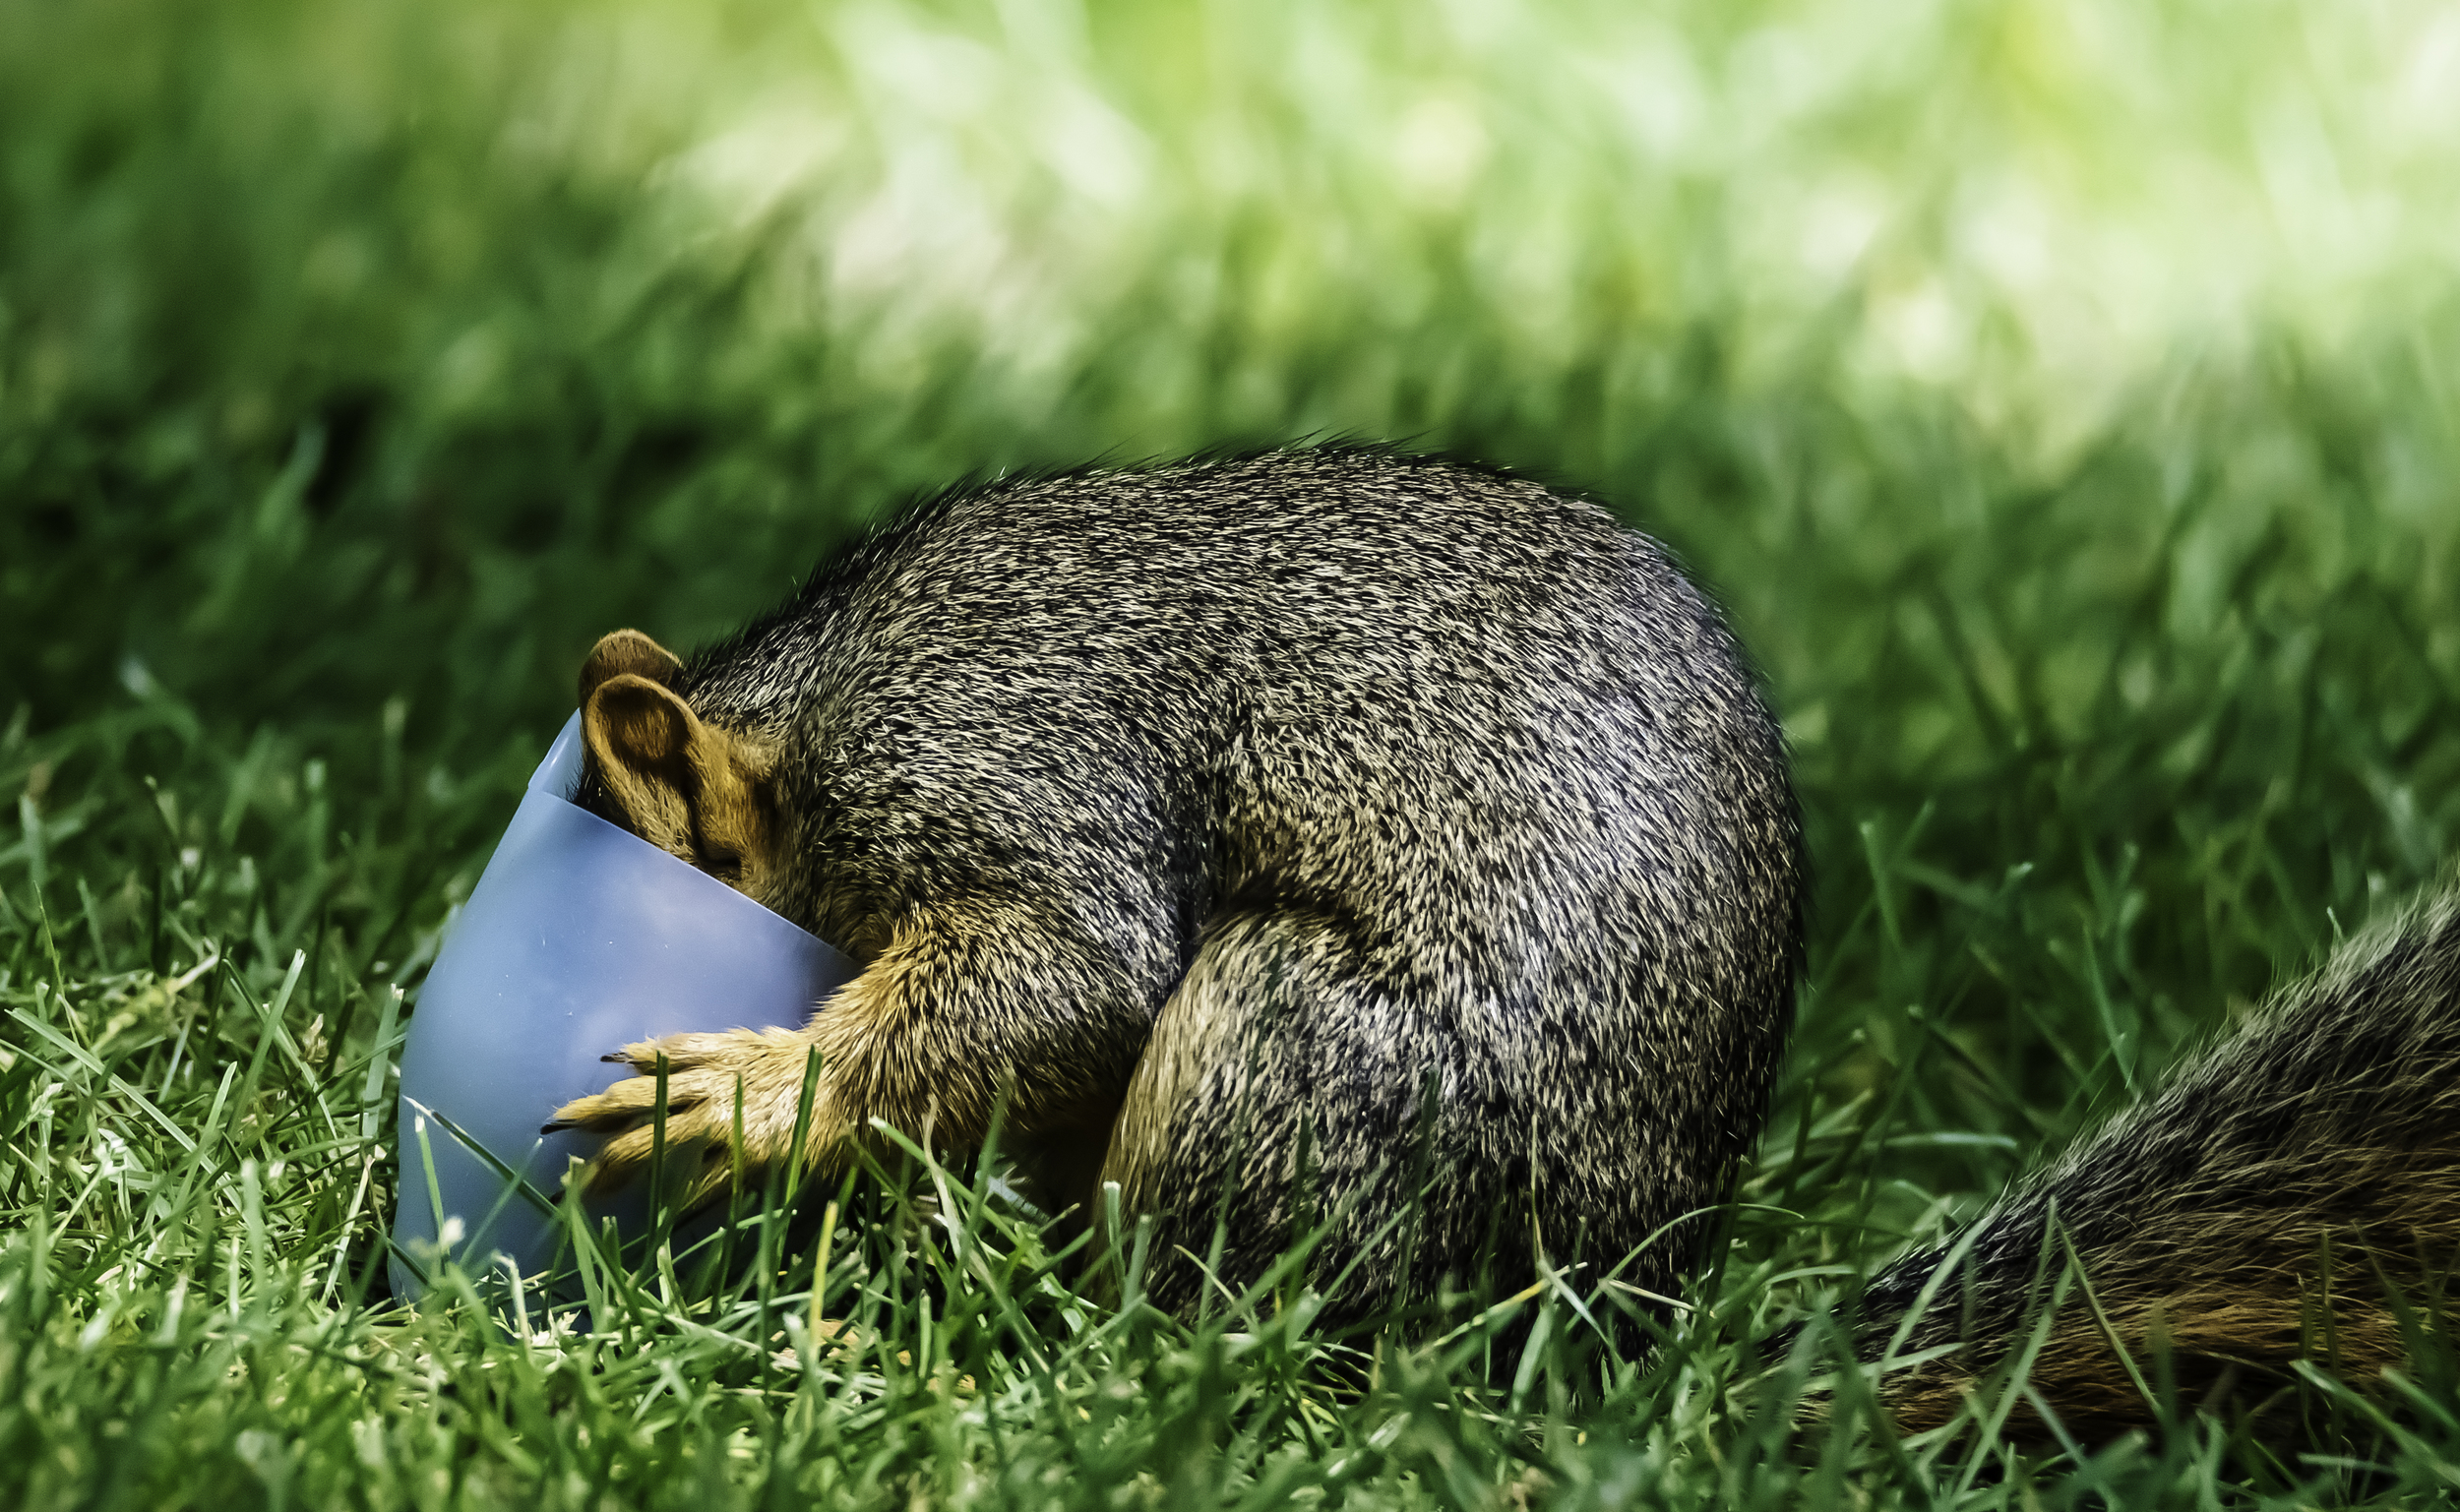 Squirrel finds plastic cup, bites it and then buries its head in it.